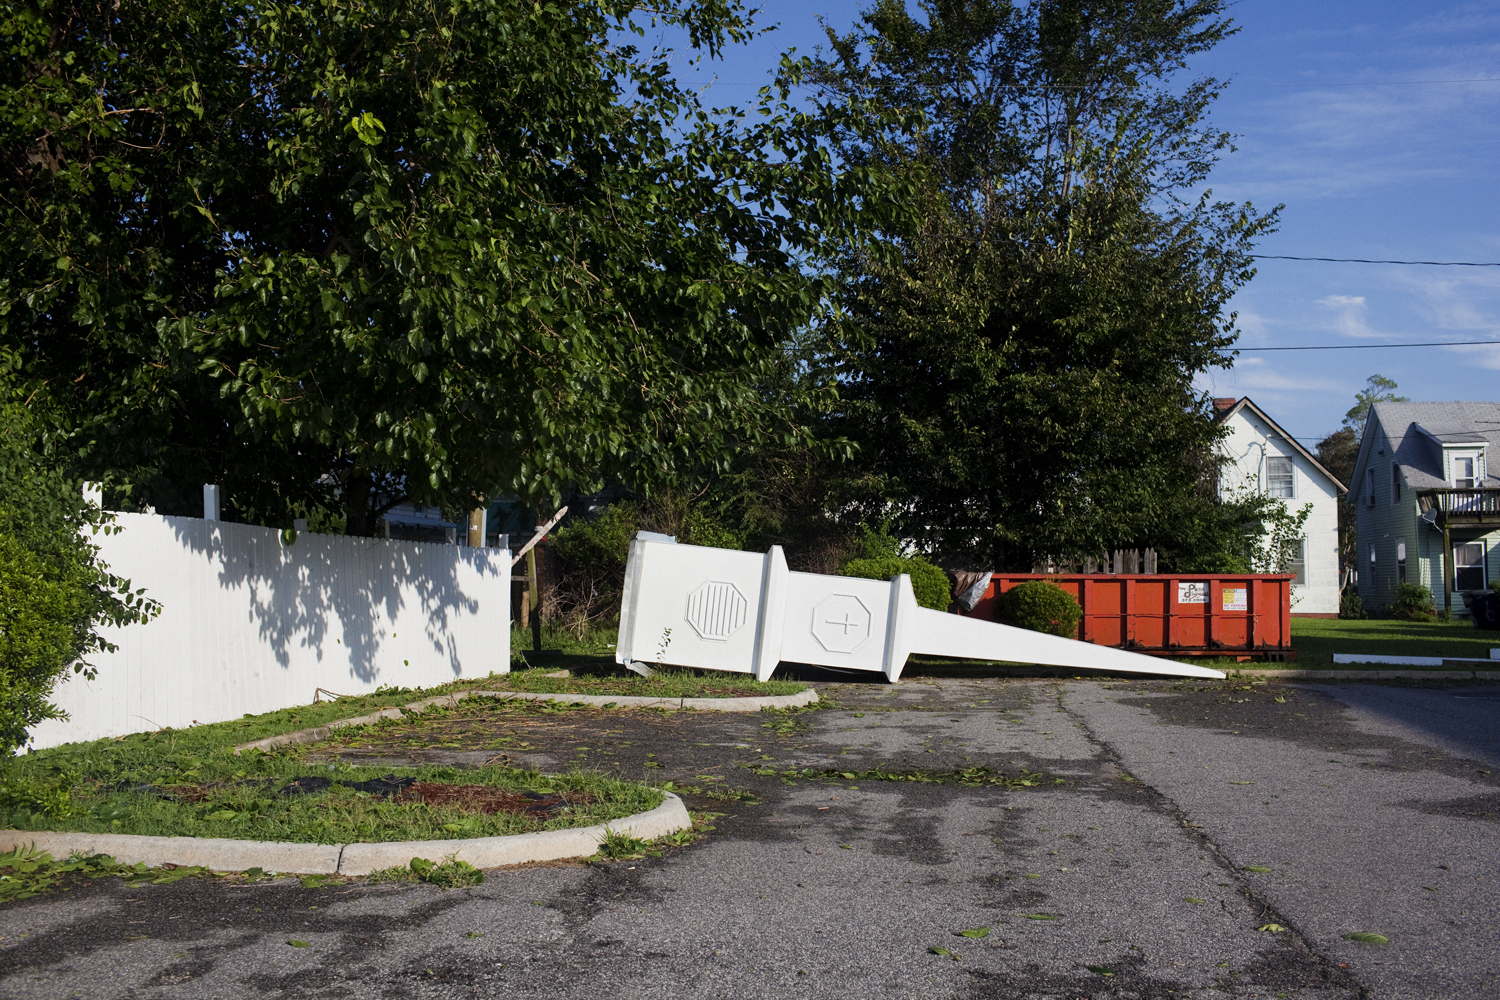 August 28, 2011, Portsmouth, Virginia. A steeple lies on the ground next to a church on Sunday.